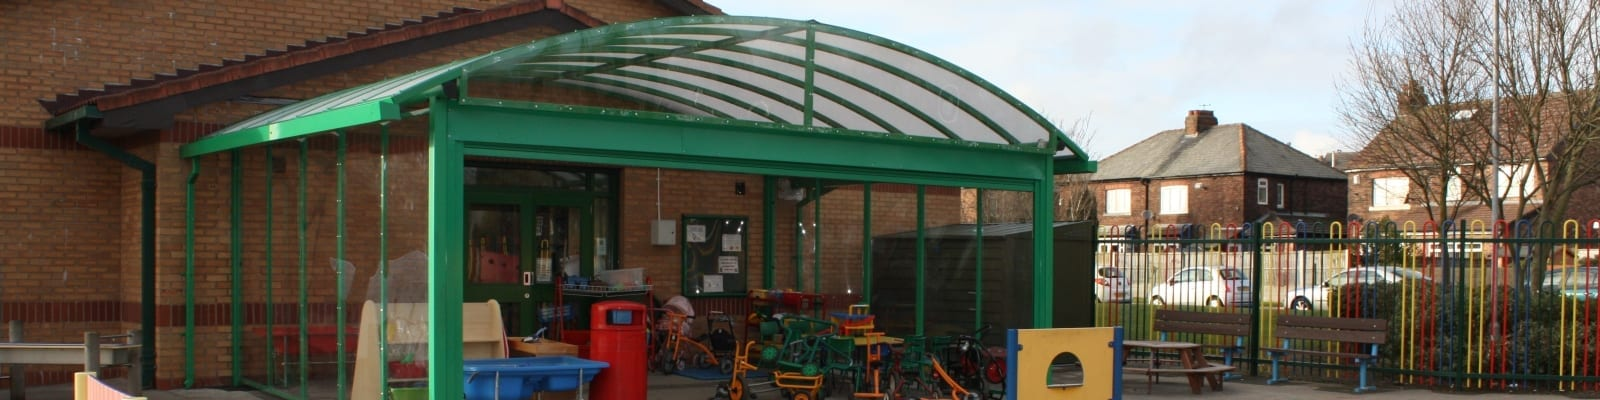 Ditton Primary School Liverpool Secure Canopy